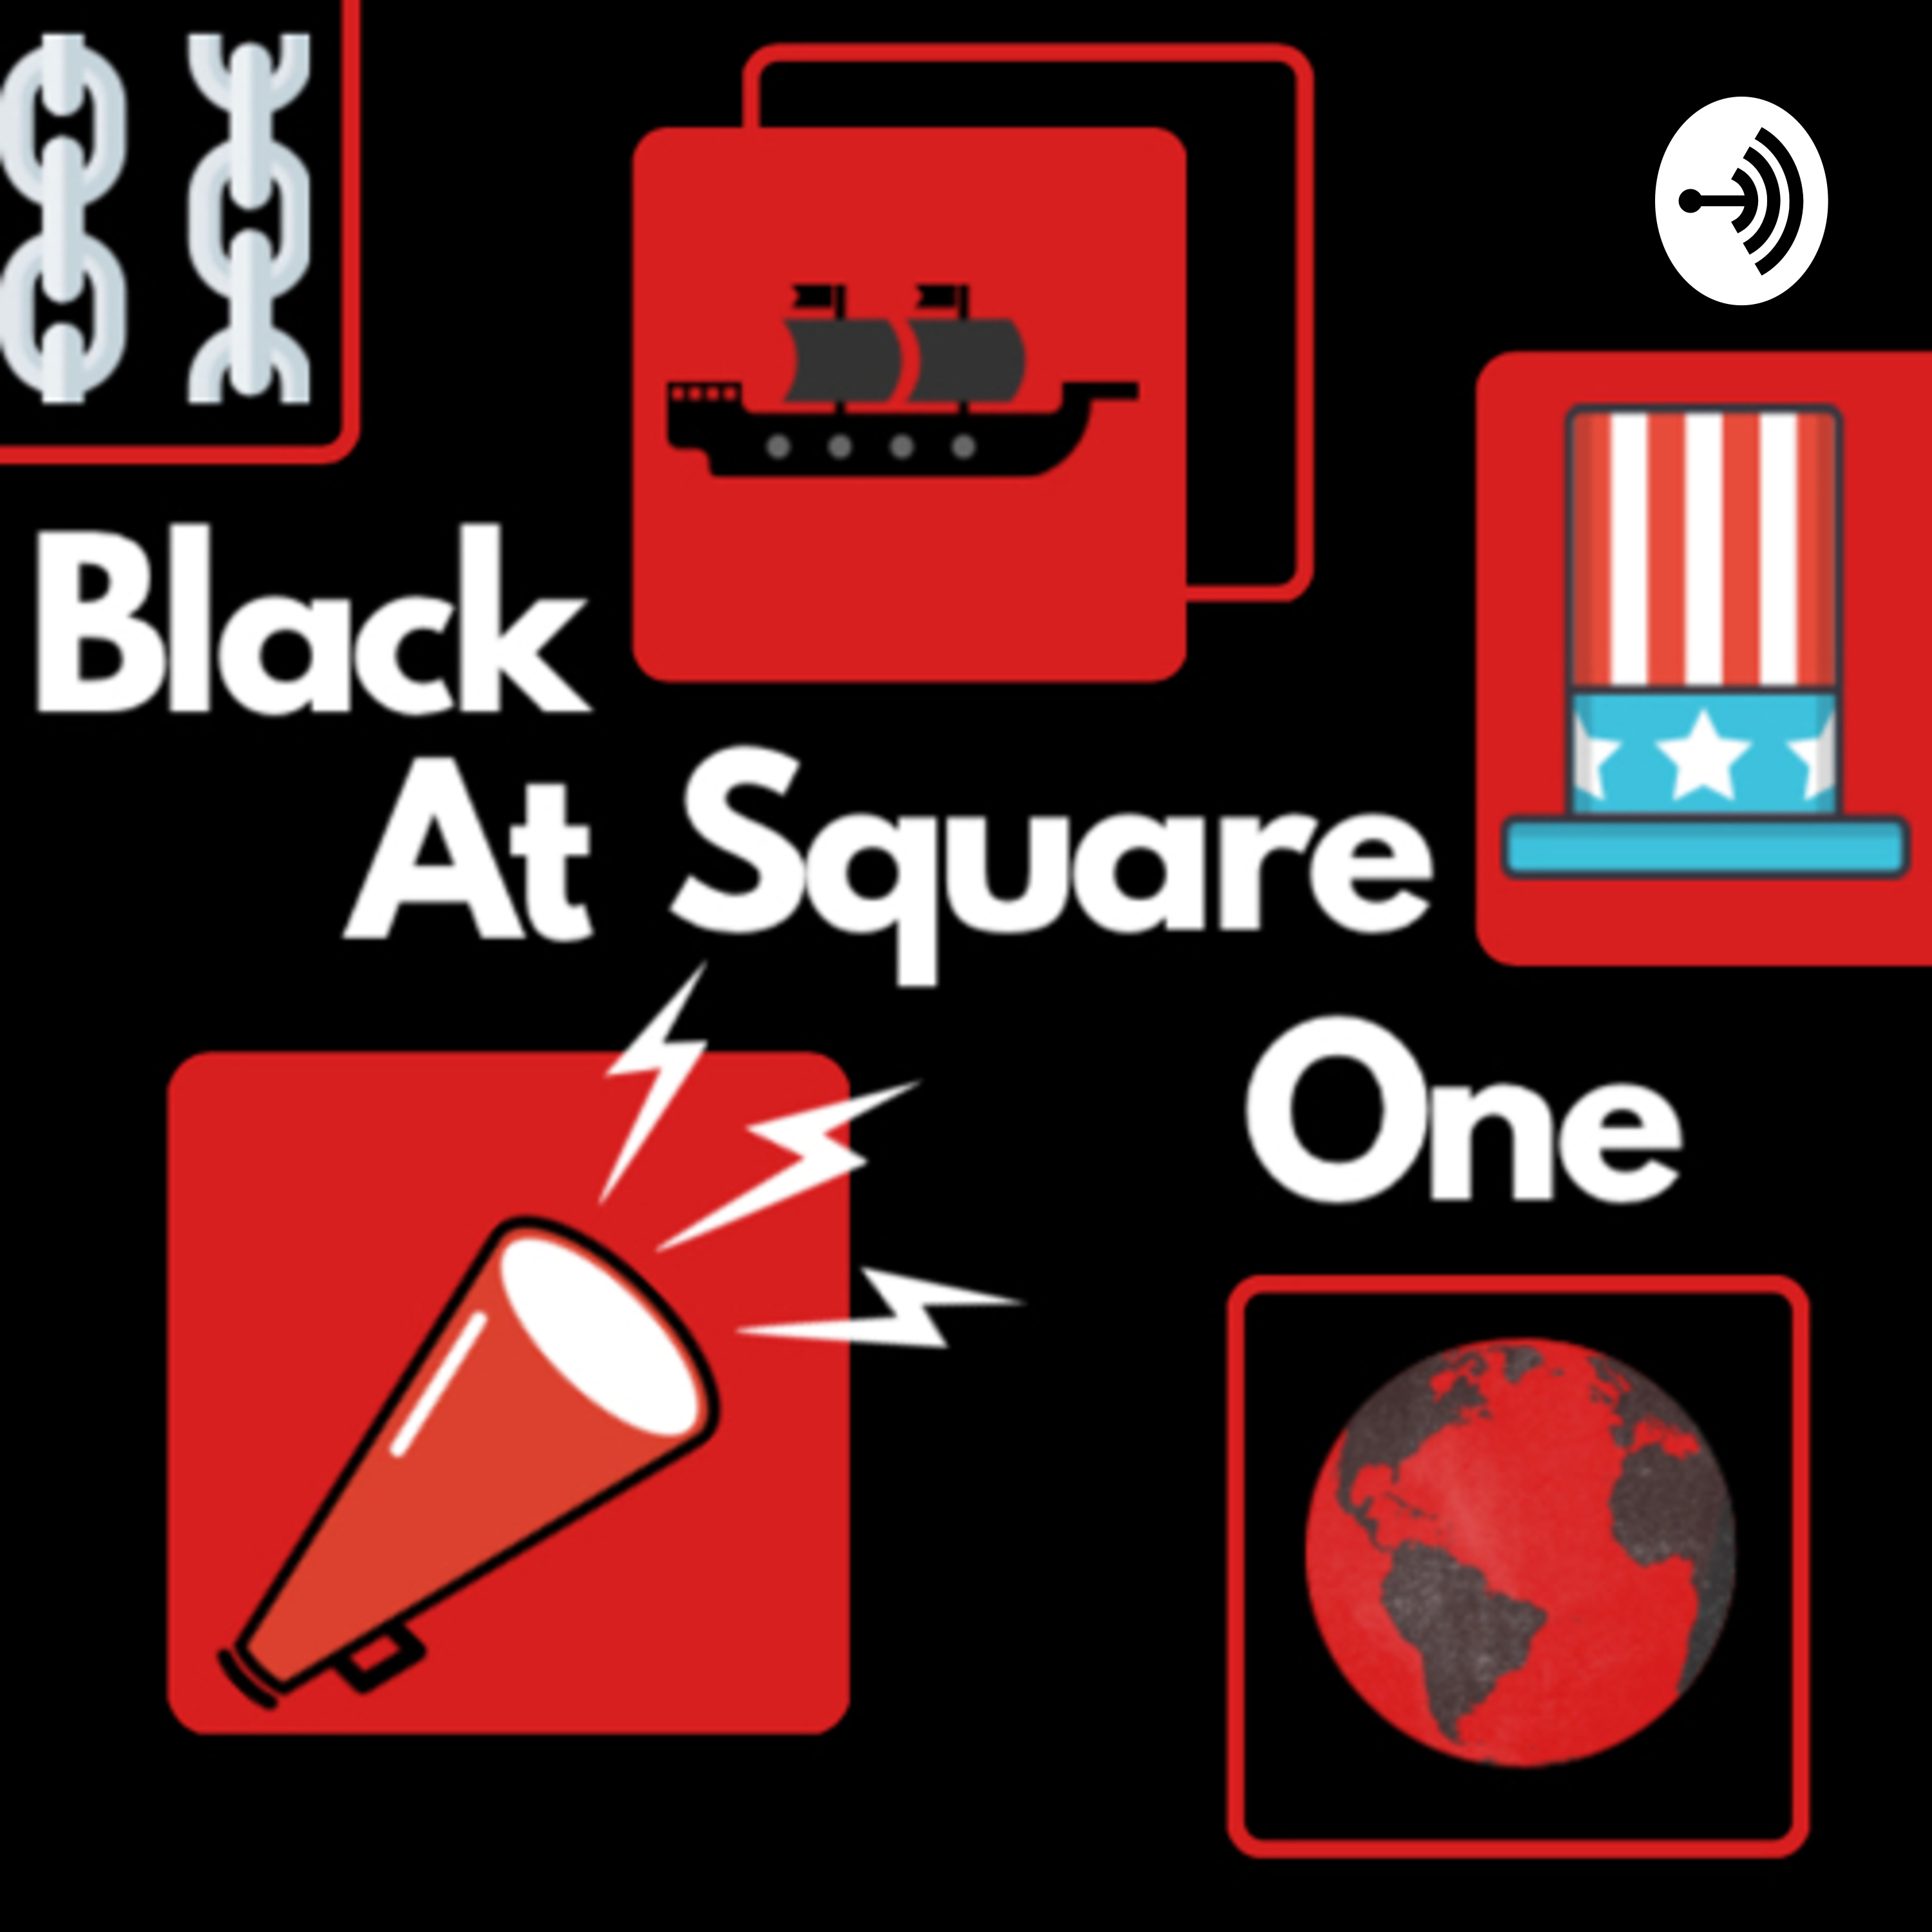 Black at Square One